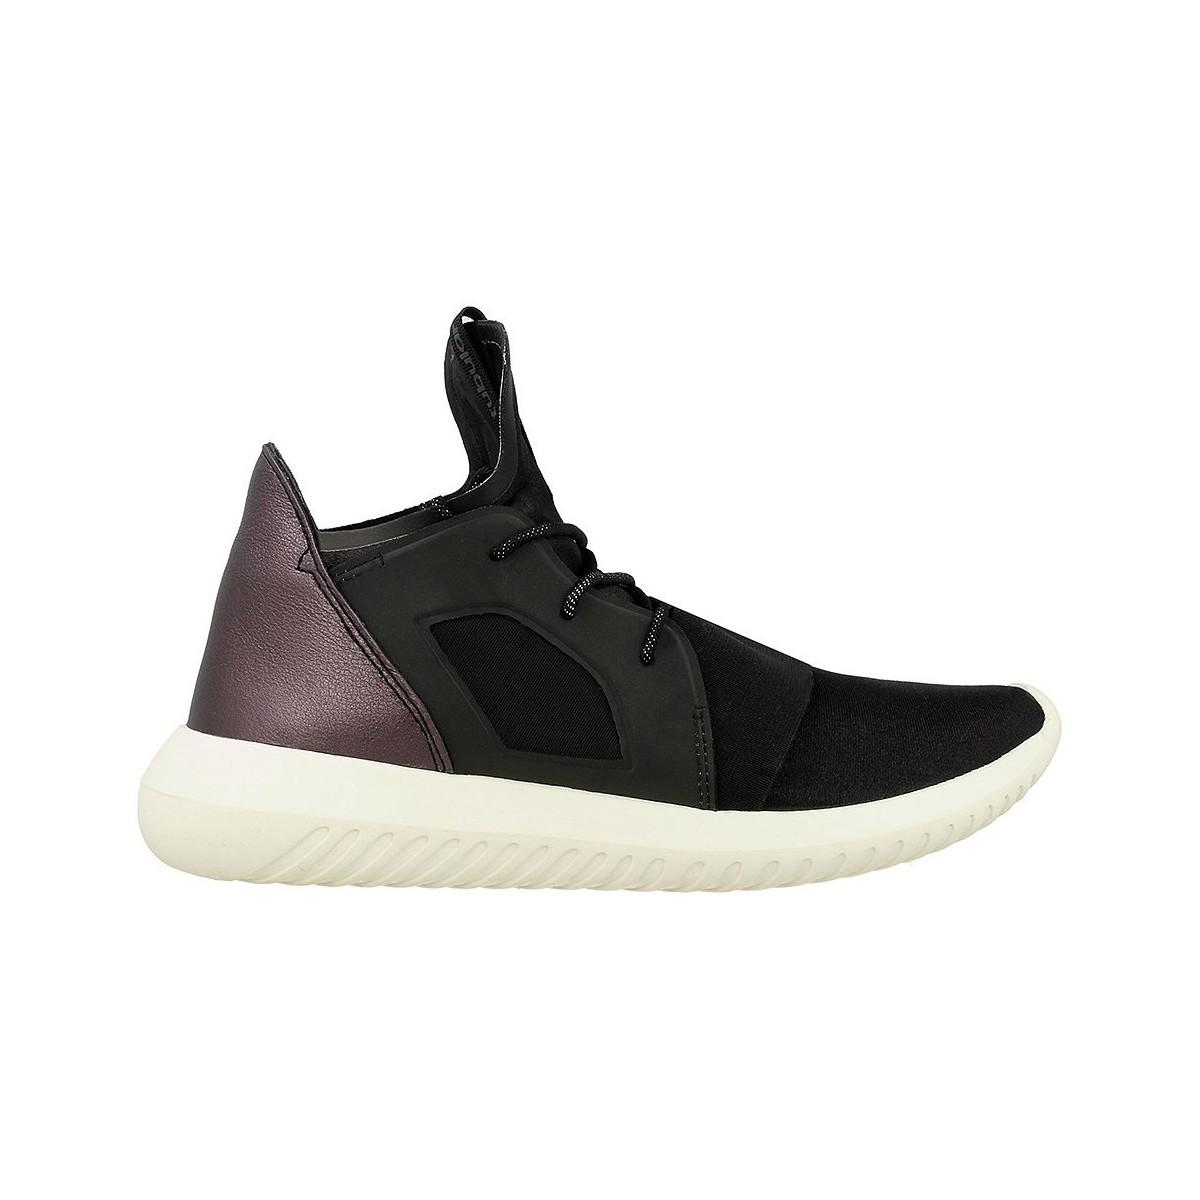 4a2715513260 Adidas Tubular Defiant W Women s Shoes (trainers) In Black in Black ...